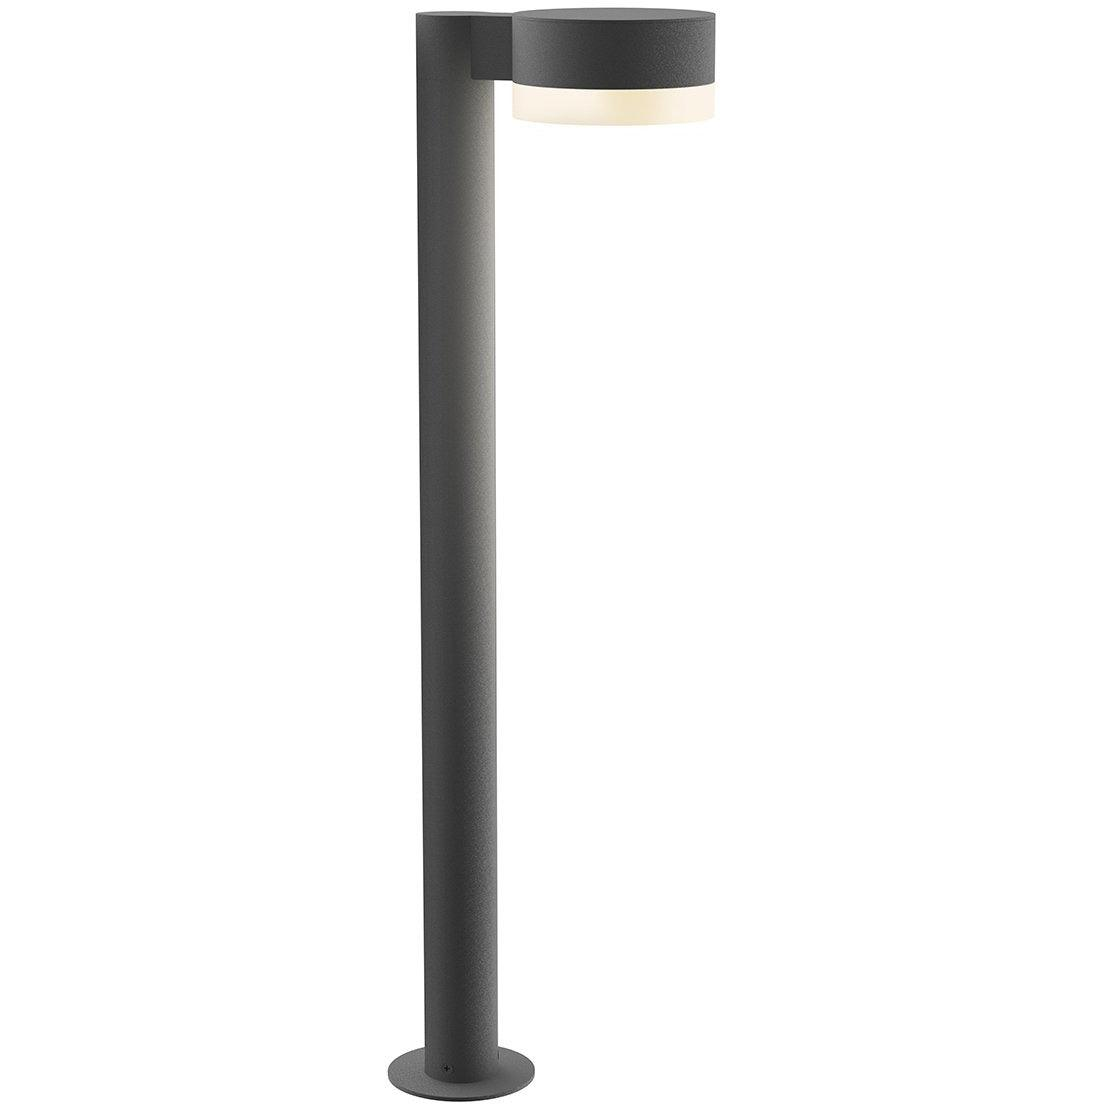 Sonneman - A Way of Light - 7305.PC.FW.74-WL - LED Bollard - REALS - Textured Gray